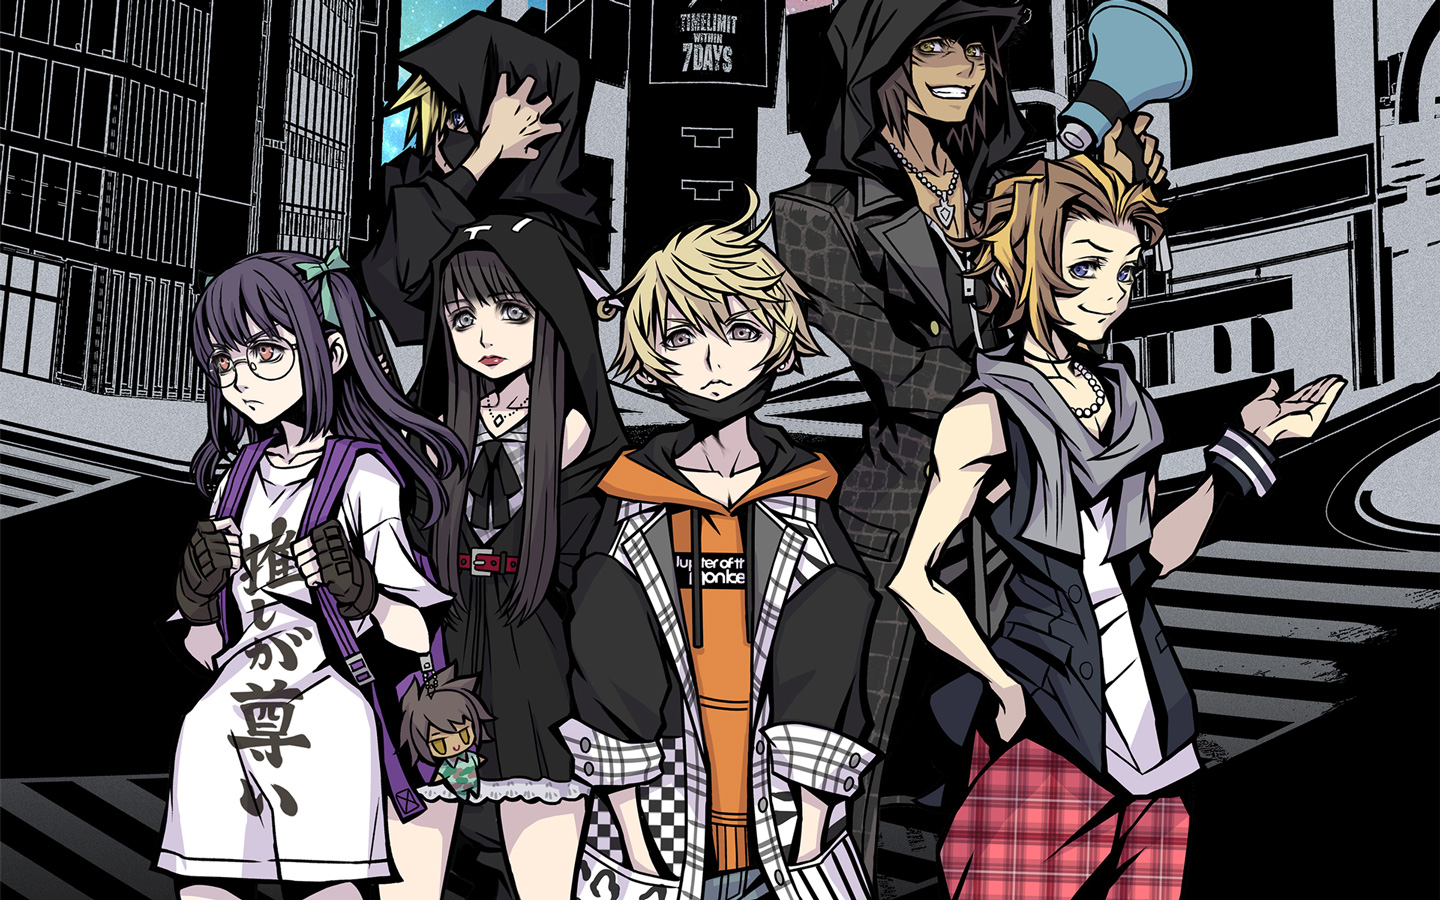 Free NEO: The World Ends with You Wallpaper in 1440x900